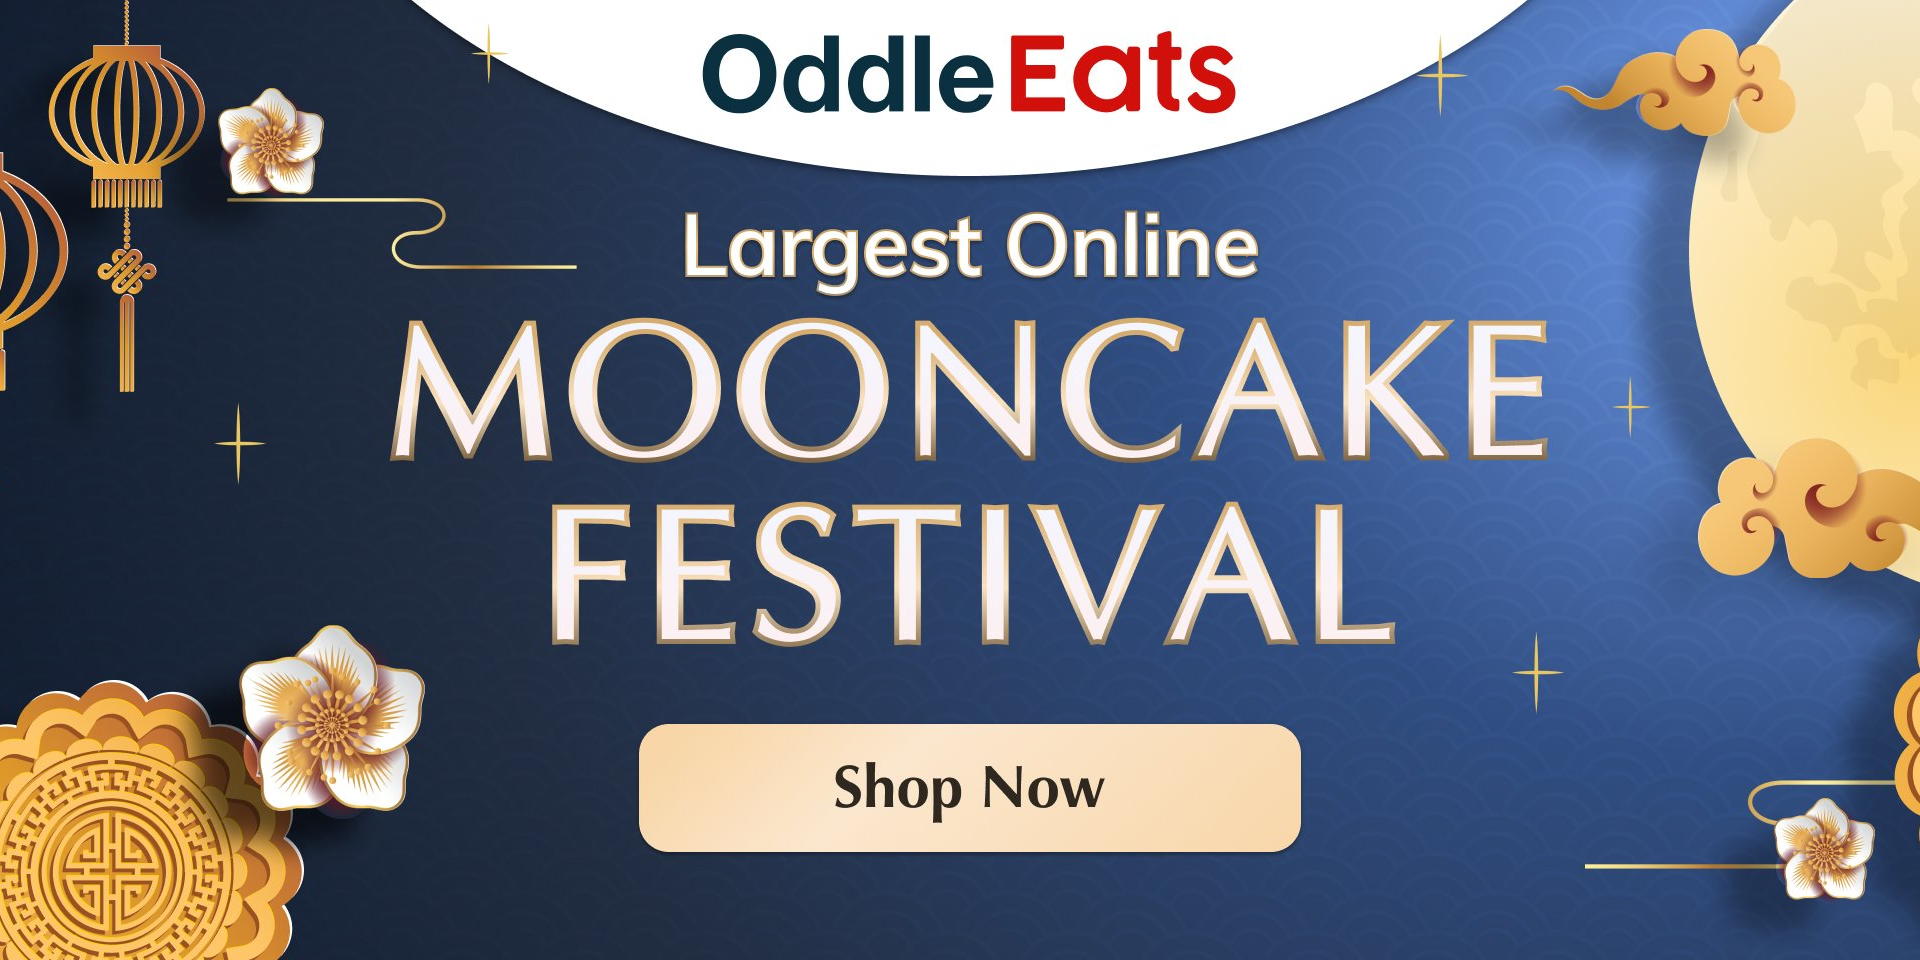 Check out Oddle Eats as they have the largest online mooncake festival in Singapore!